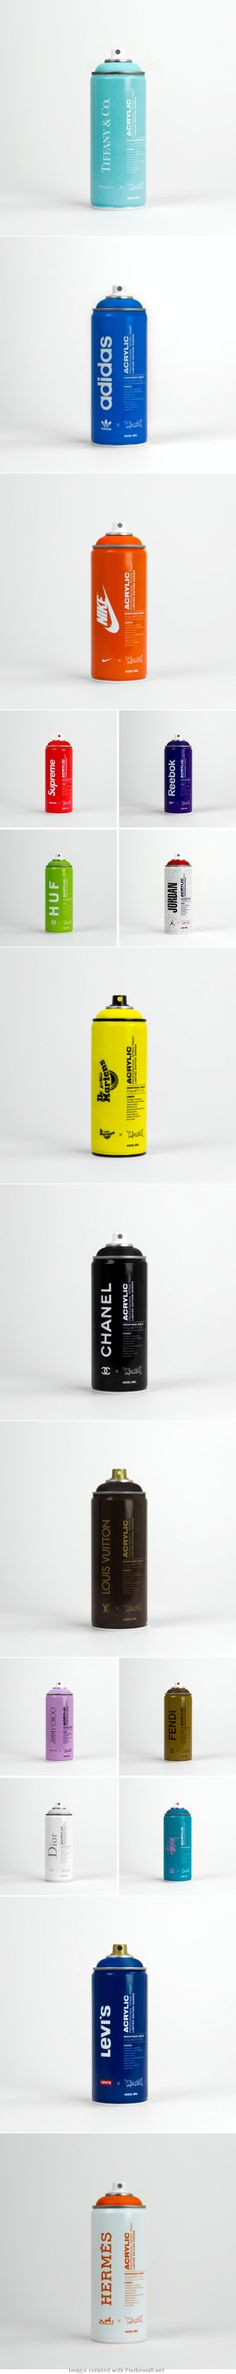 Assorted branded spray #paint #packaging PD - created via http://plentyofcolour.com/2014/01/03/branded-spray-paint/